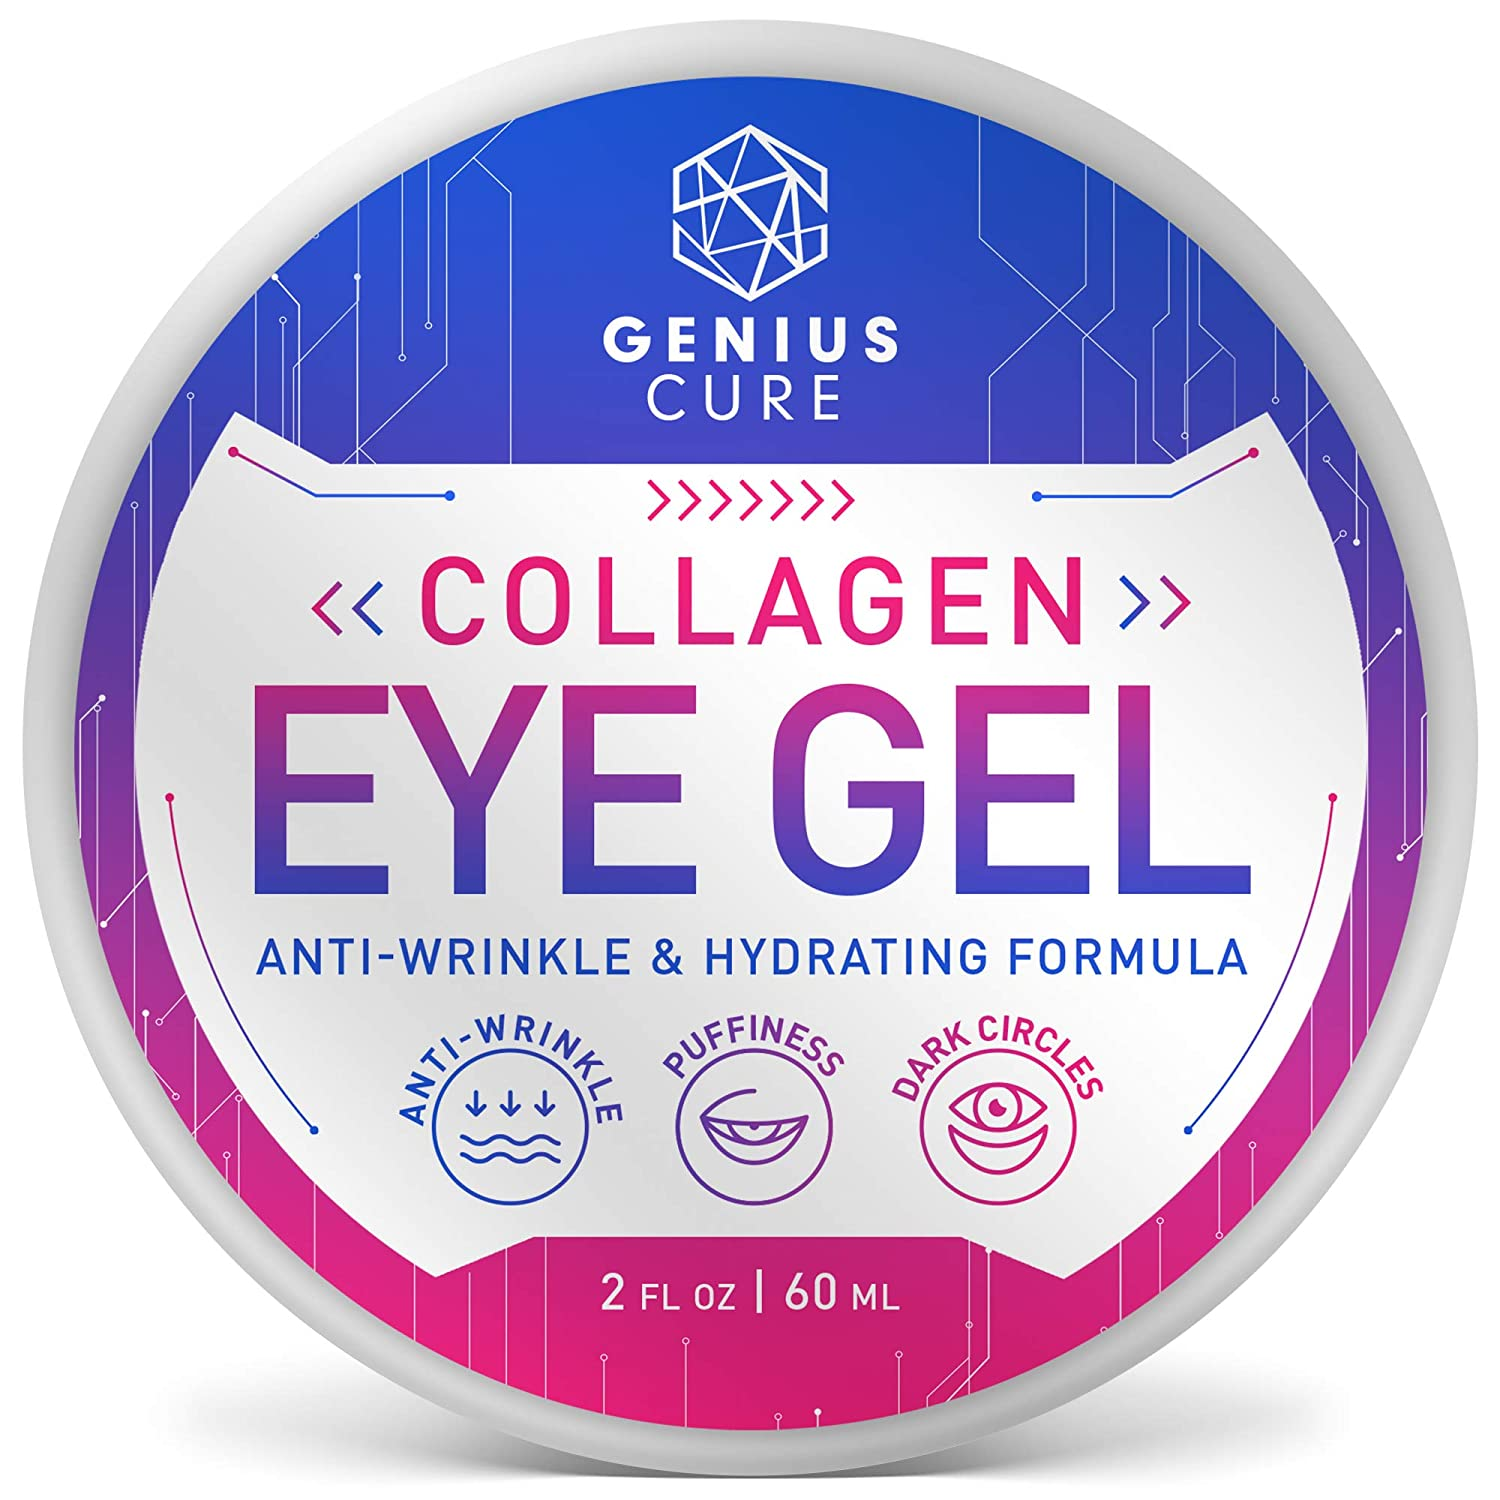 Collagen Eye Gel, Under Eye Gel Treatment for Reducing Dark Circles, Moisturizing, Targets Wrinkles Anti-Aging, Fine Lines, Eye Bags, Puffiness for Women Men 2oz: Beauty